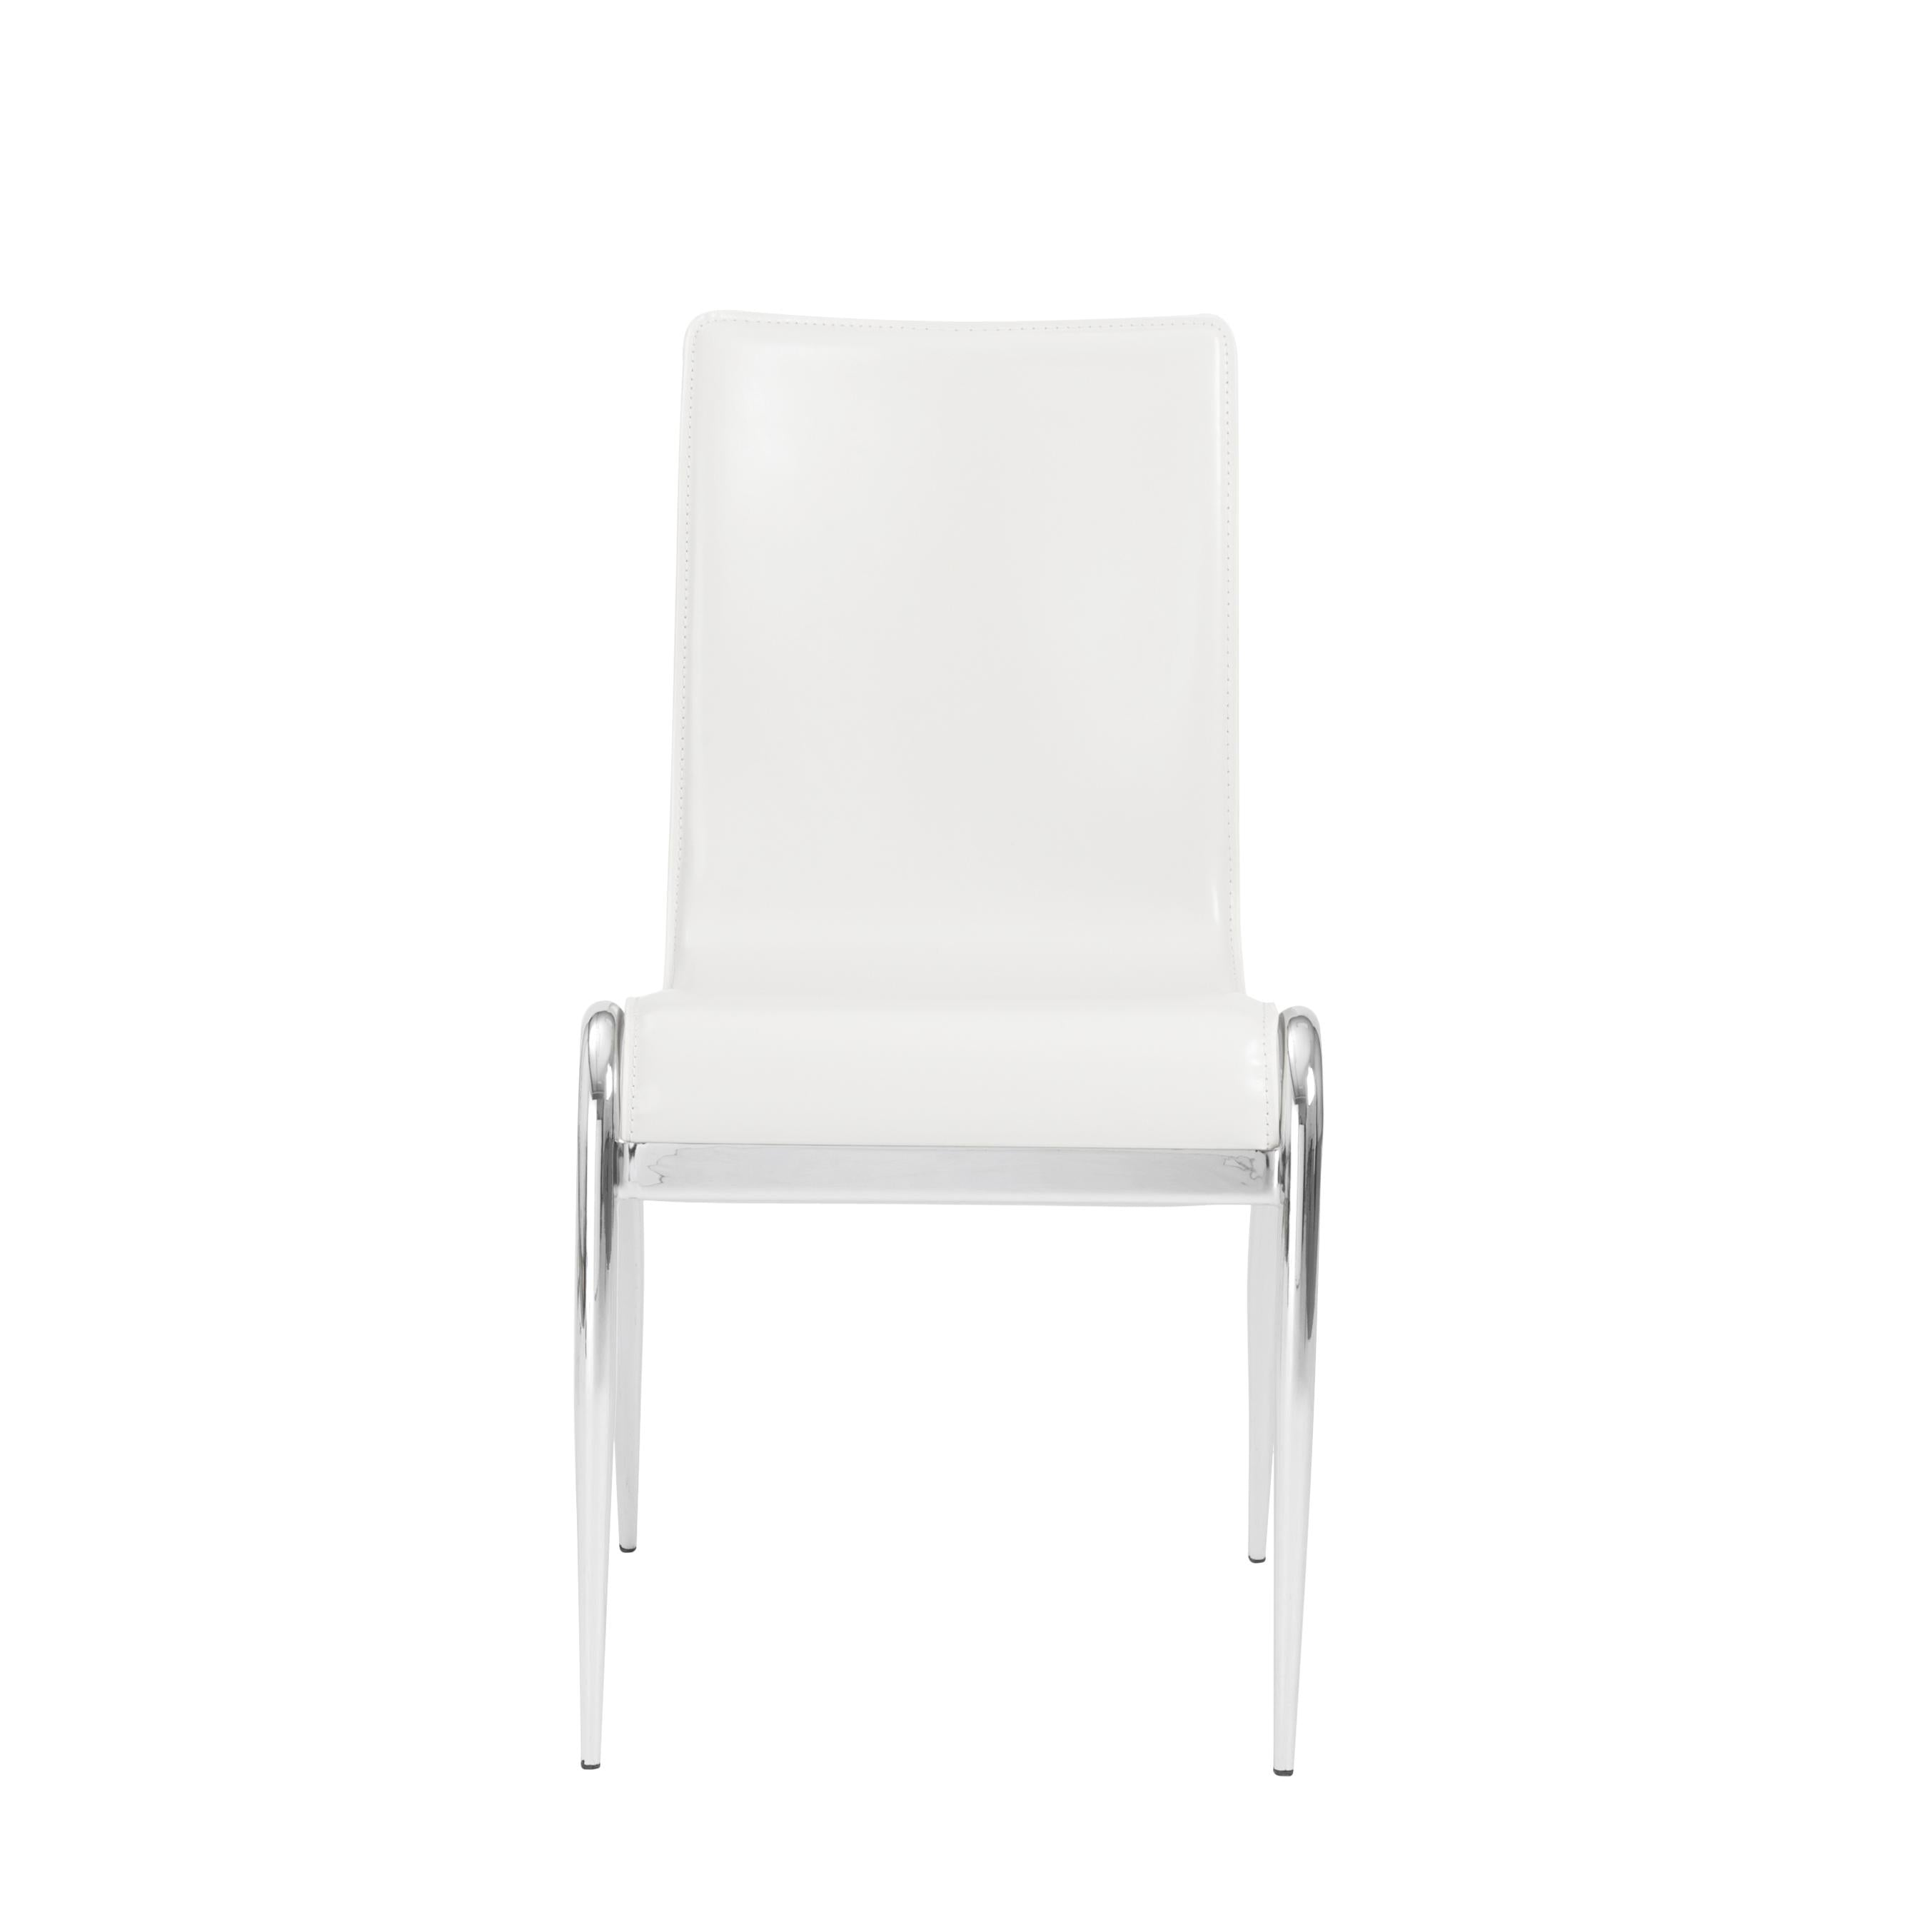 White Leather and Chromed Steel Guest or Conference Chair (Set of 4)